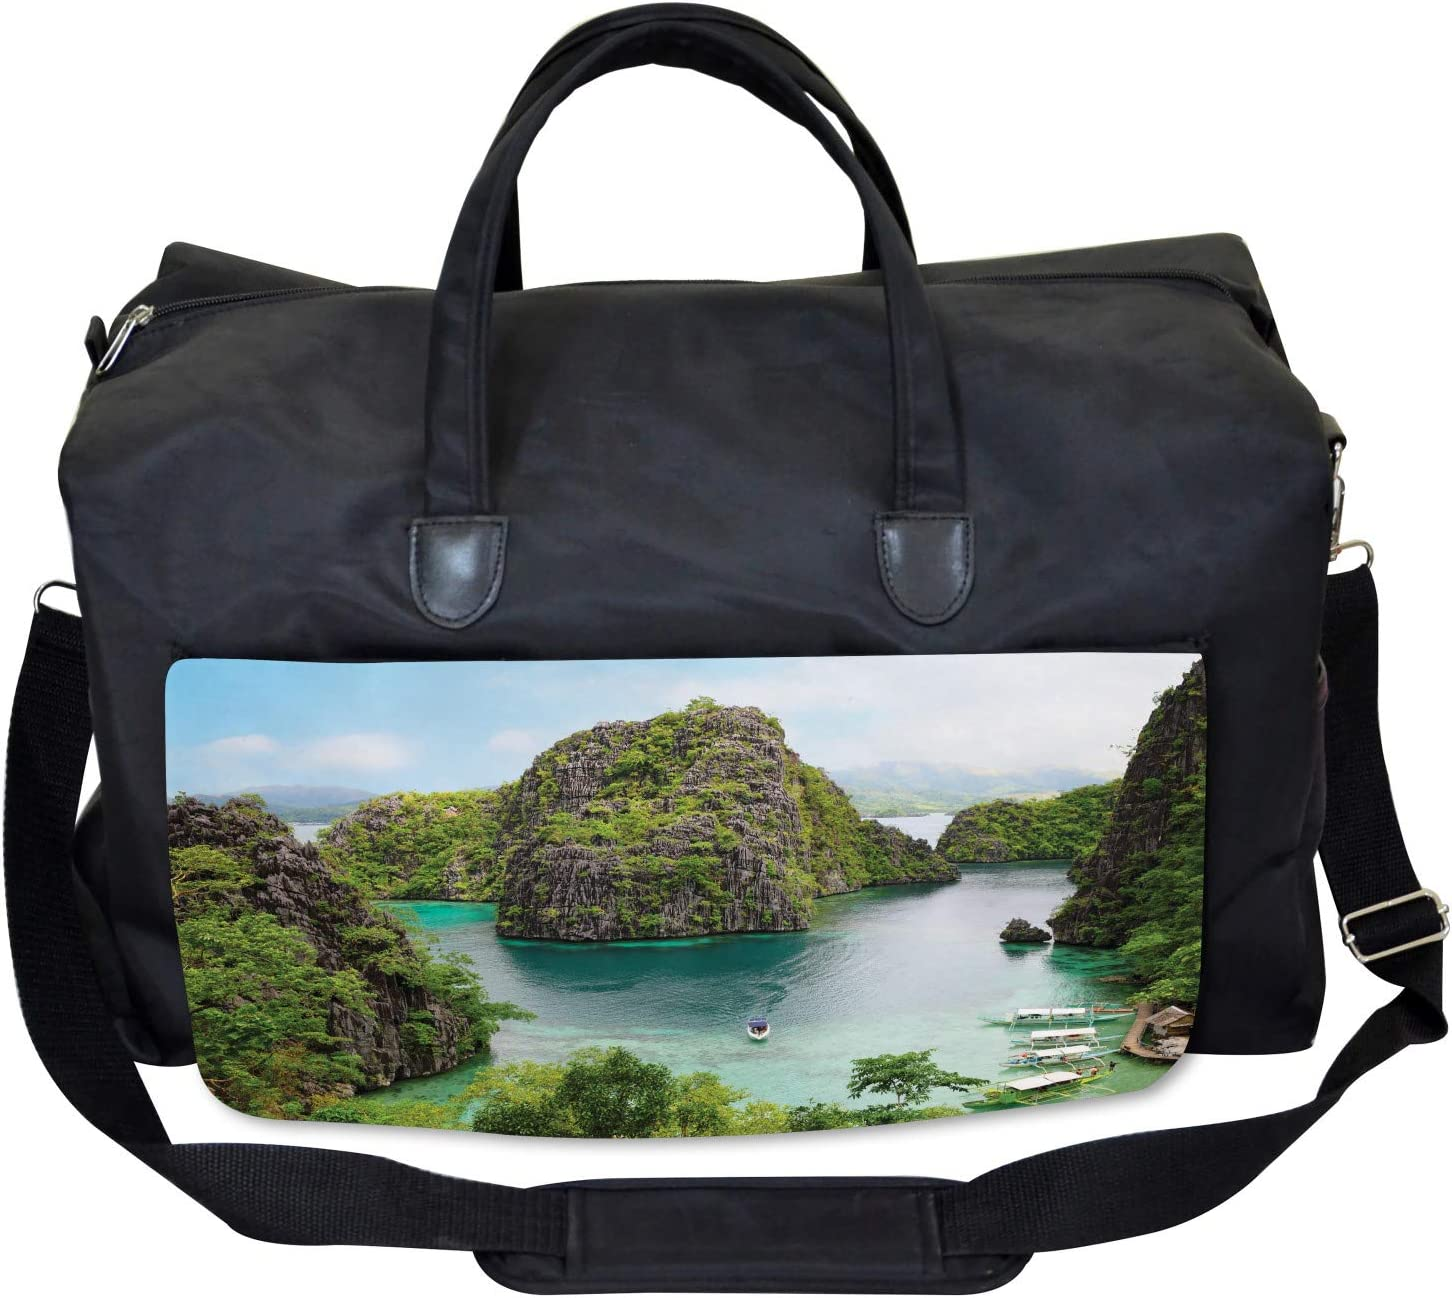 Cliff in Philippines Large Weekender Carry-on Ambesonne Landscape Gym Bag